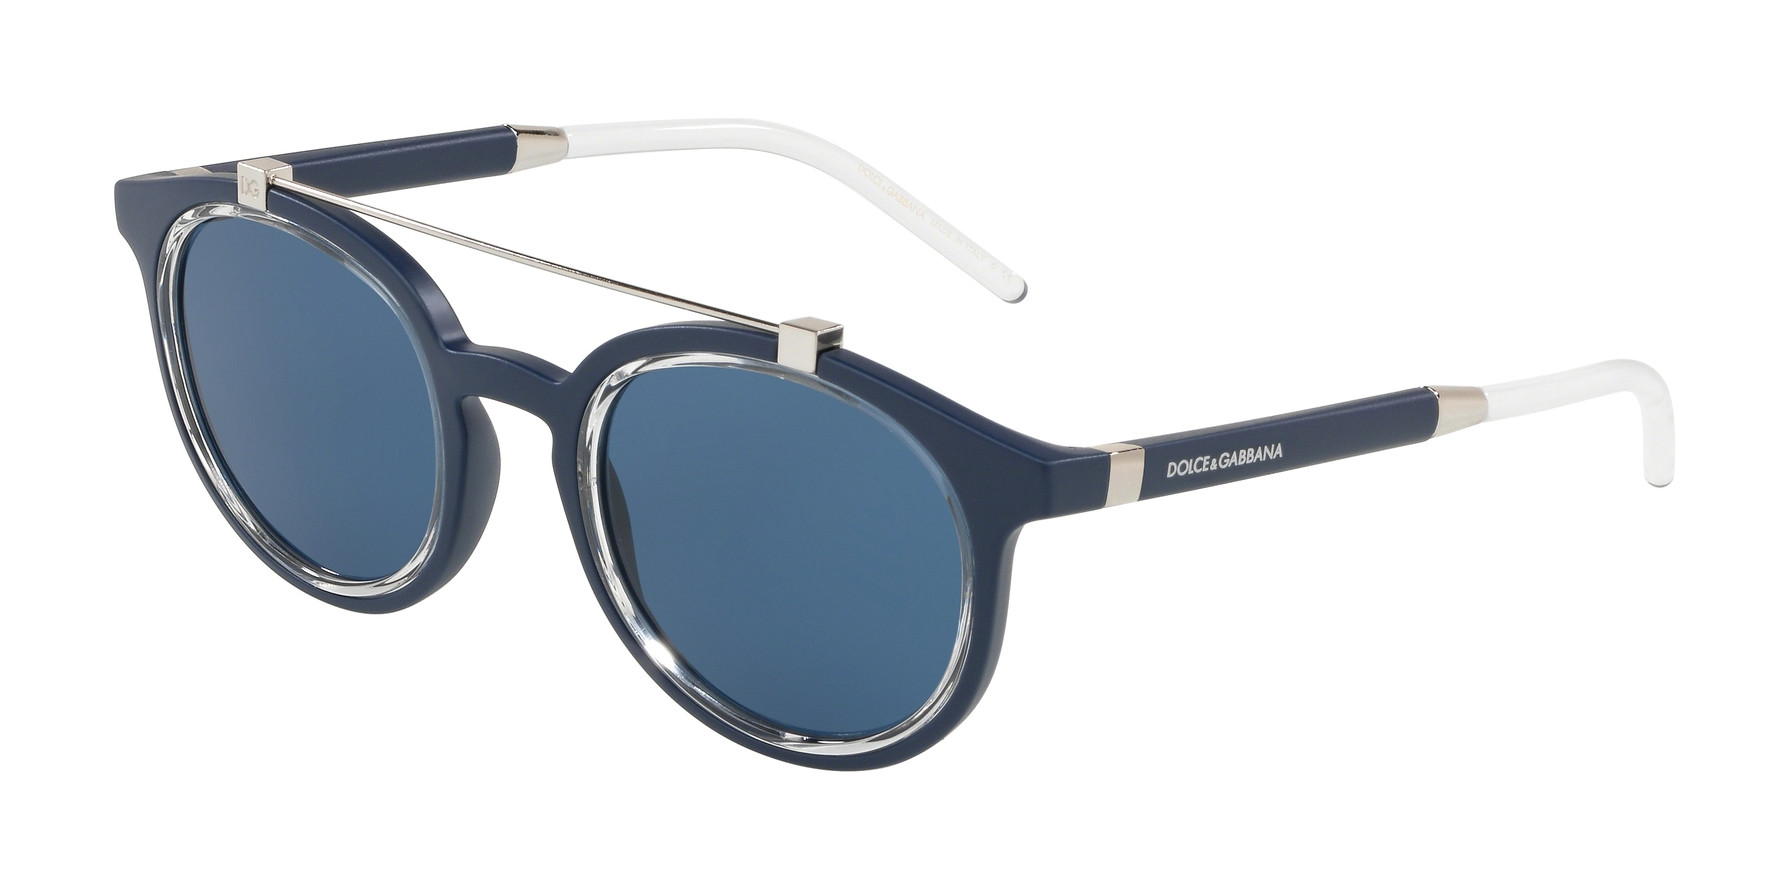 59589e362da5 Receive 15% Off and a Free Cleaning Kit. Dolce & Gabbana DG6116 Sunglasses